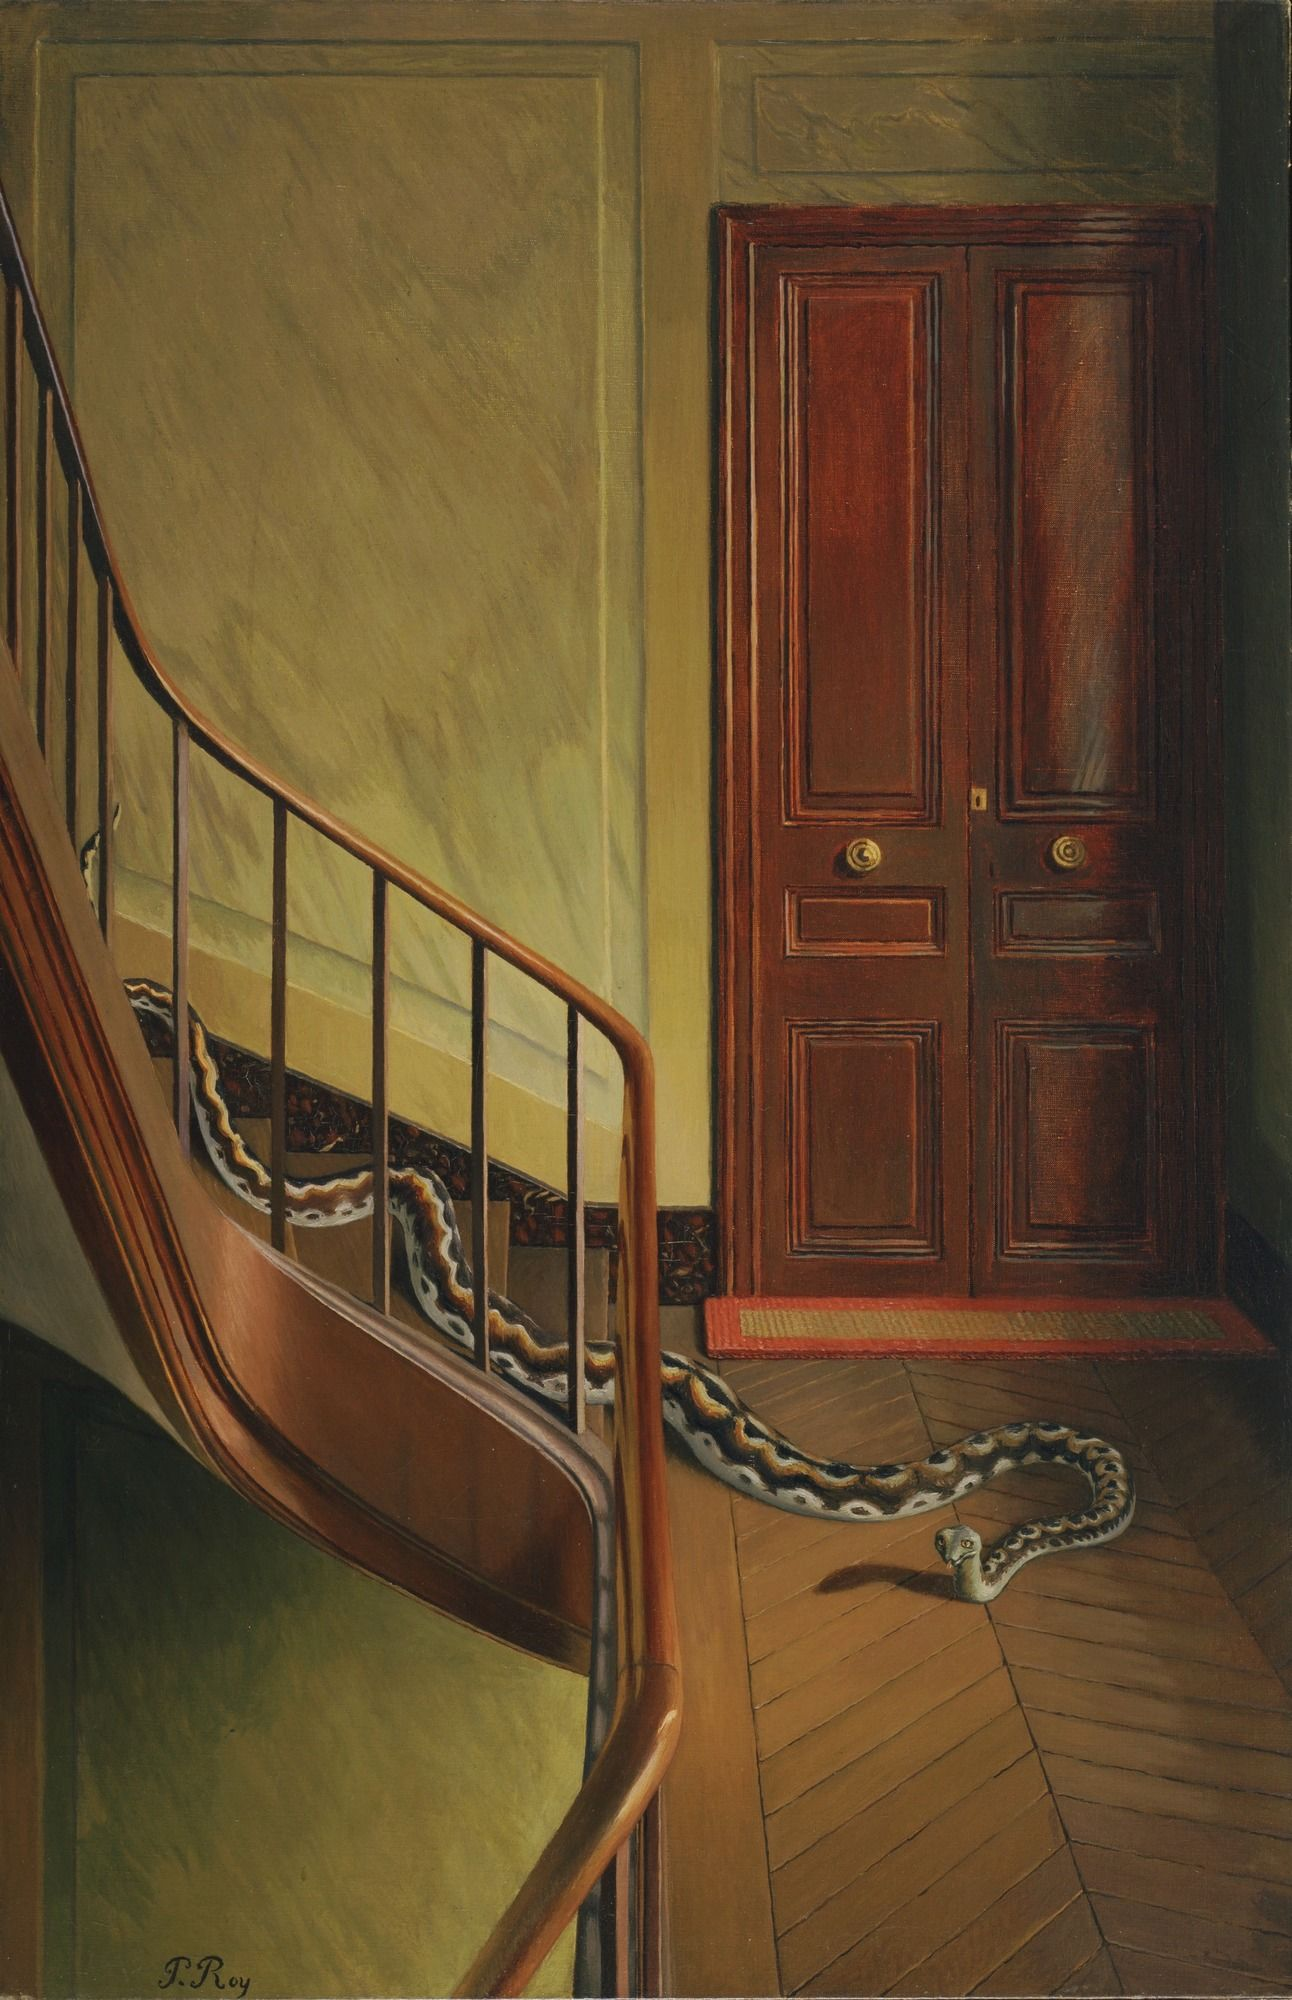 """12/4/16 Pierre Roy. Danger on the Stairs. 1927 or 1928. Oil on canvas. 36 x 23 5/8"""" (91.4 x 60 cm). Gift of Abby Aldrich Rockefeller. 142.1935. Painting and Sculpture  I like this piece because it looks like an illustration out of a book. Roy is a French artist."""